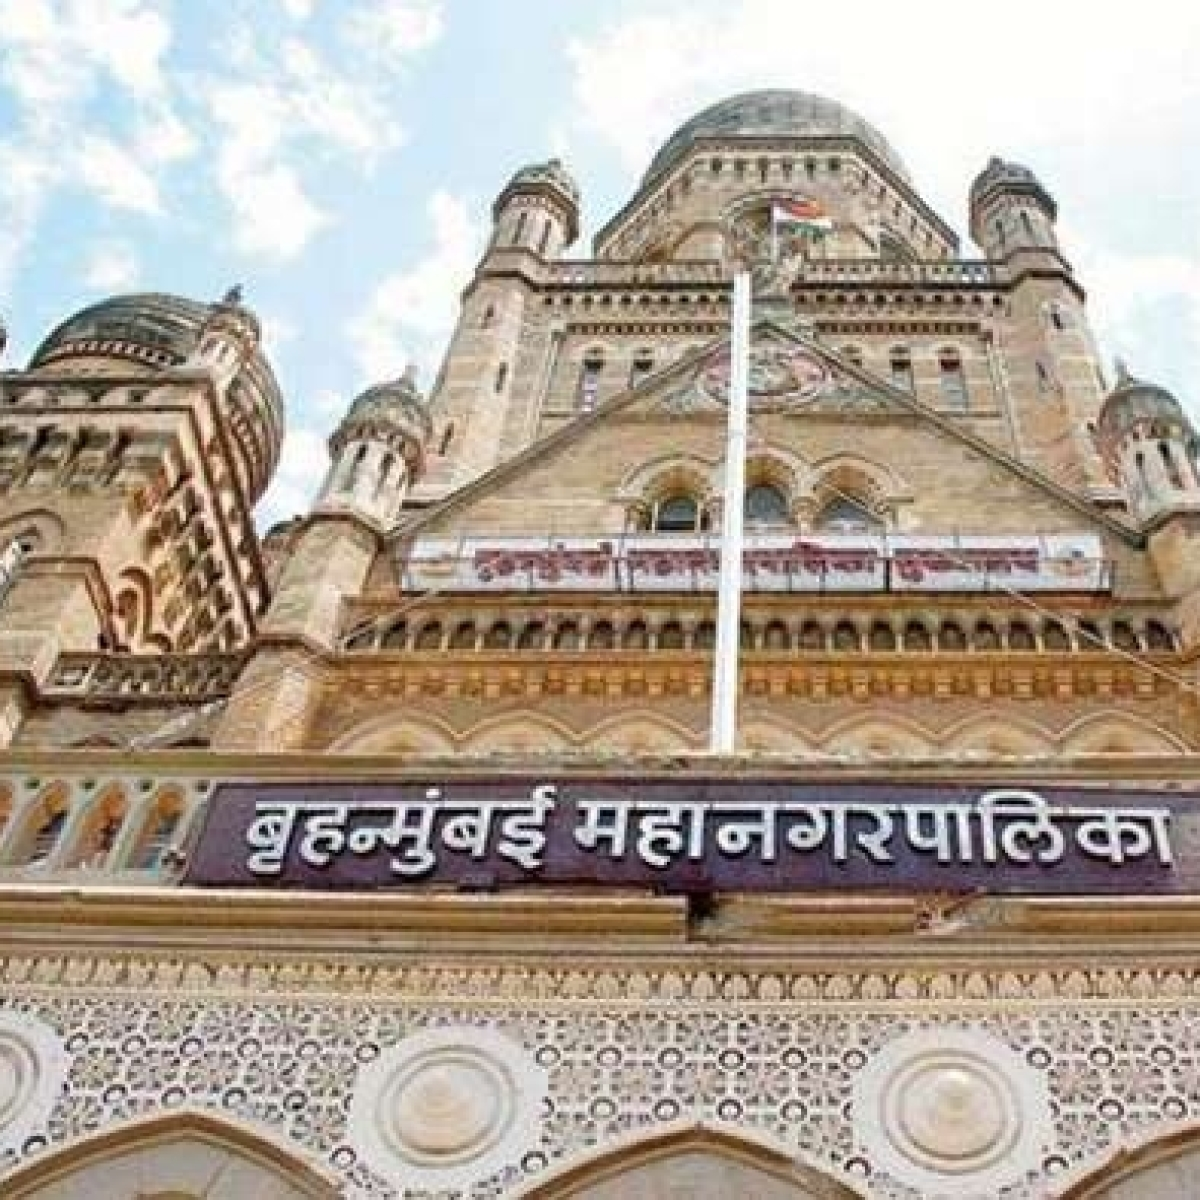 Coronavirus in Mumbai: COVID-19 victim's kin alleges BMC of unresponsive